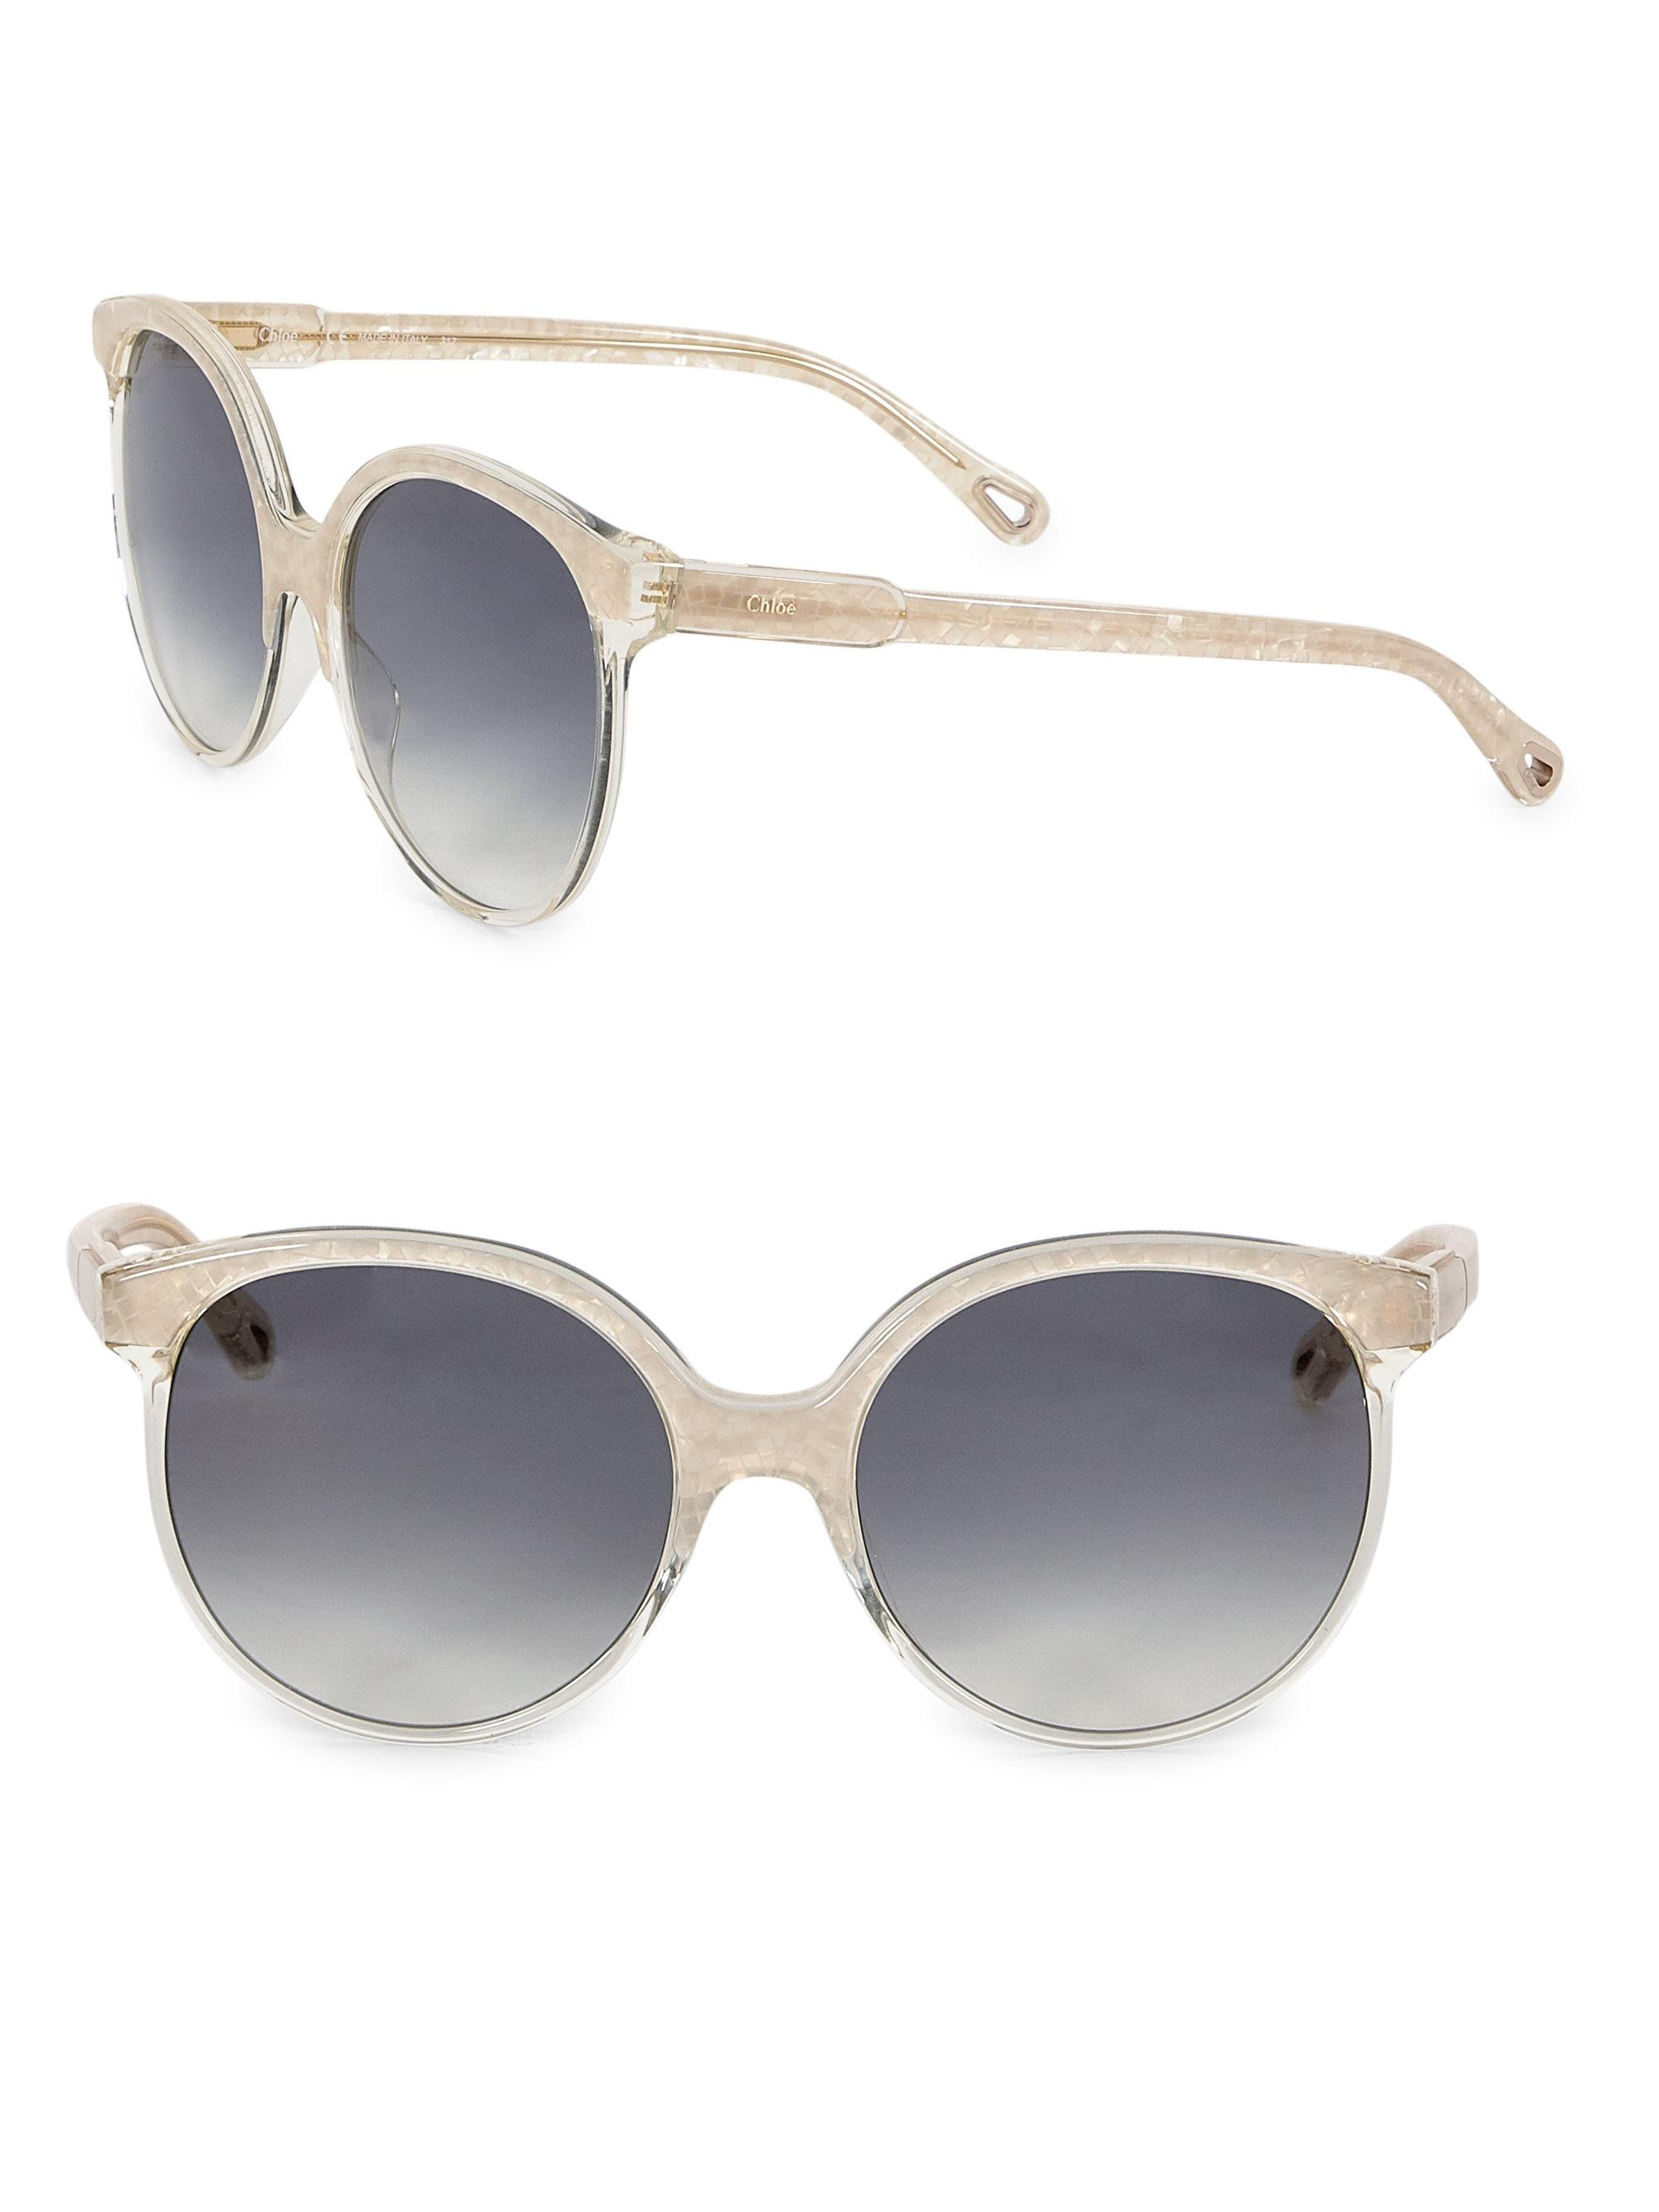 44bf297d4da Chloé Quilly Contemporary Layered Sunglasses in Gray - Lyst